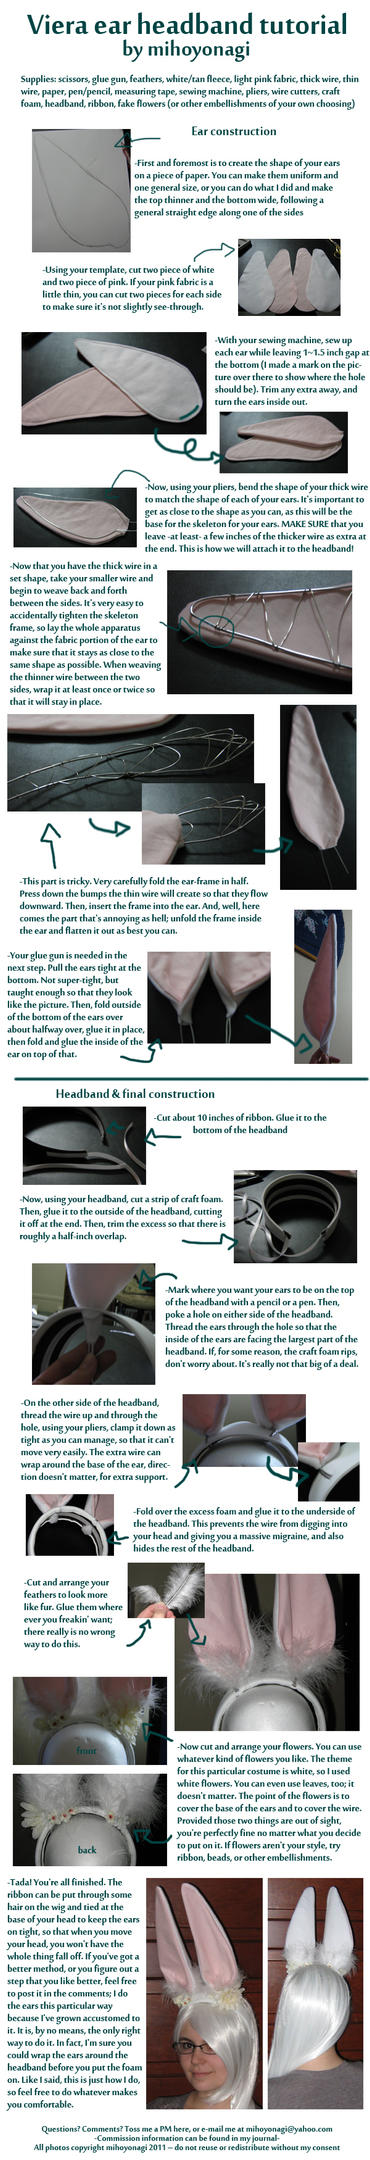 Viera Ear+Headband Tutorial by mihoyonagi